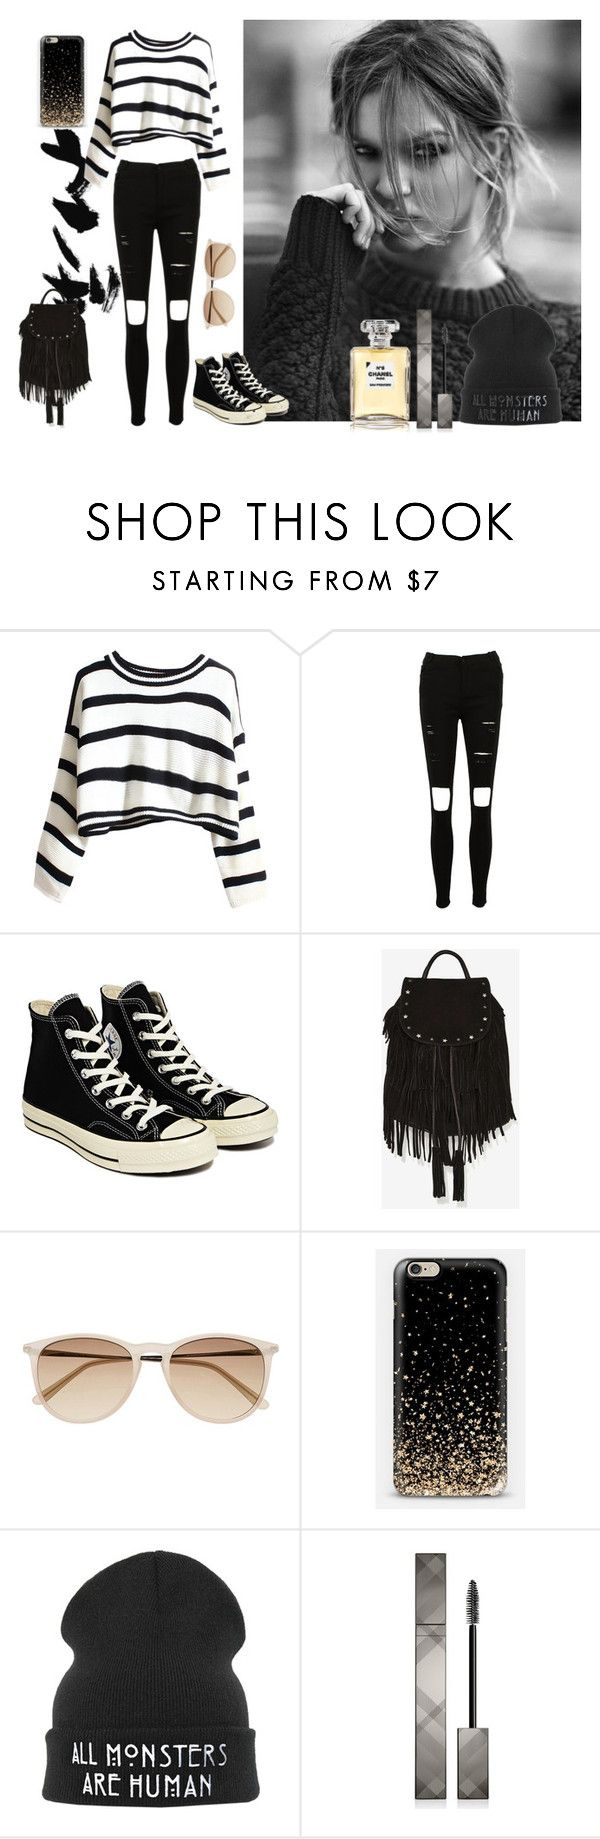 """""""Tattooed Heart by Ariana Grande"""" by helenagonmir ❤ liked on Polyvore featuring Converse, Maison Scotch, Witchery, Burberry and Chanel"""